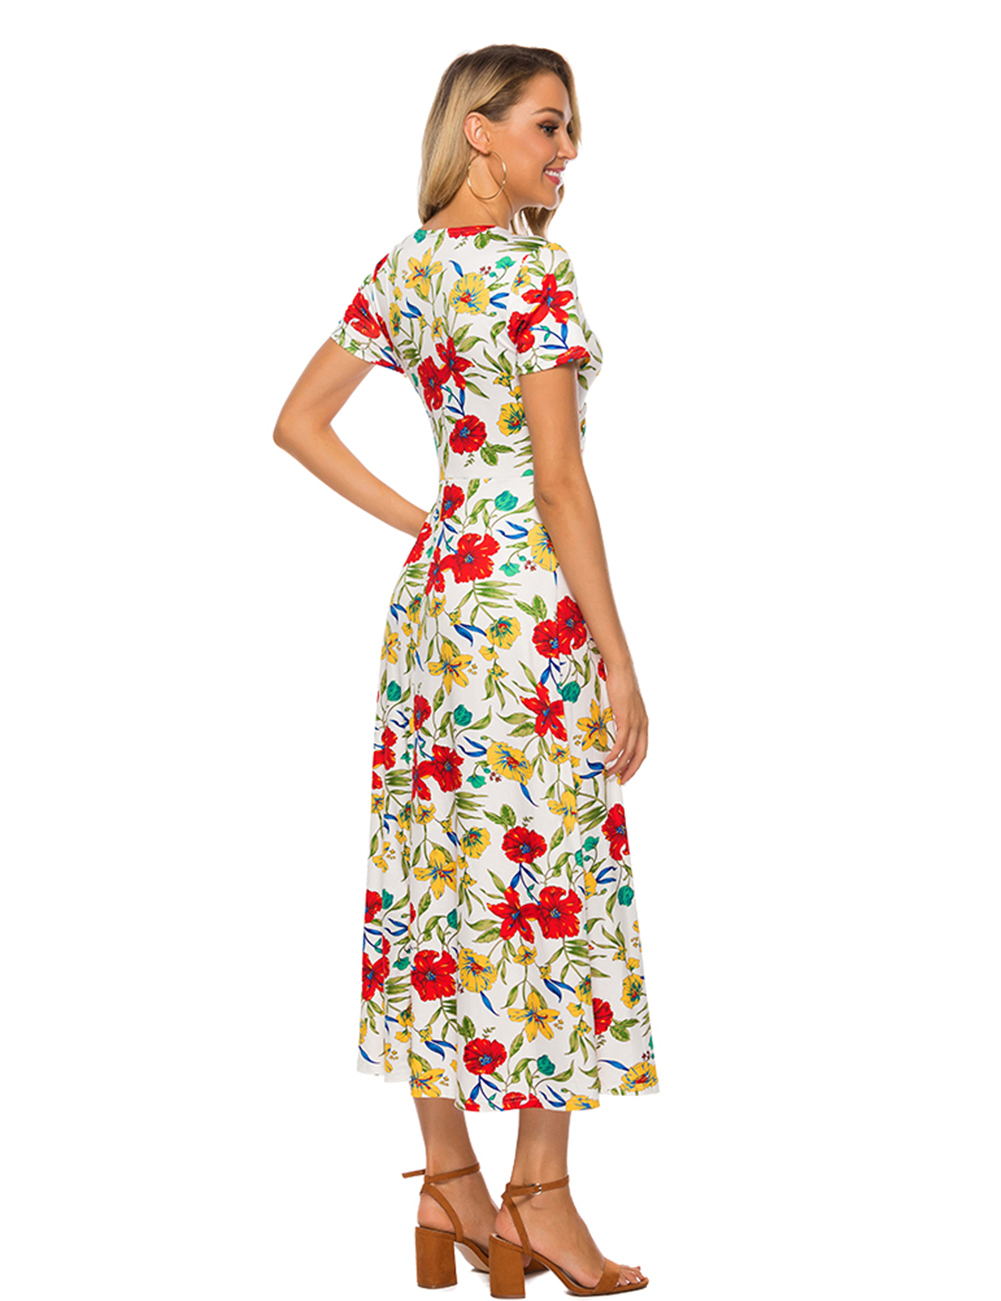 //cdn.affectcloud.com/hexinfashion/upload/imgs/Dress/Maxi_Dress/VZ190842-WH1/VZ190842-WH1-201911055dc10e46a4f17.jpg